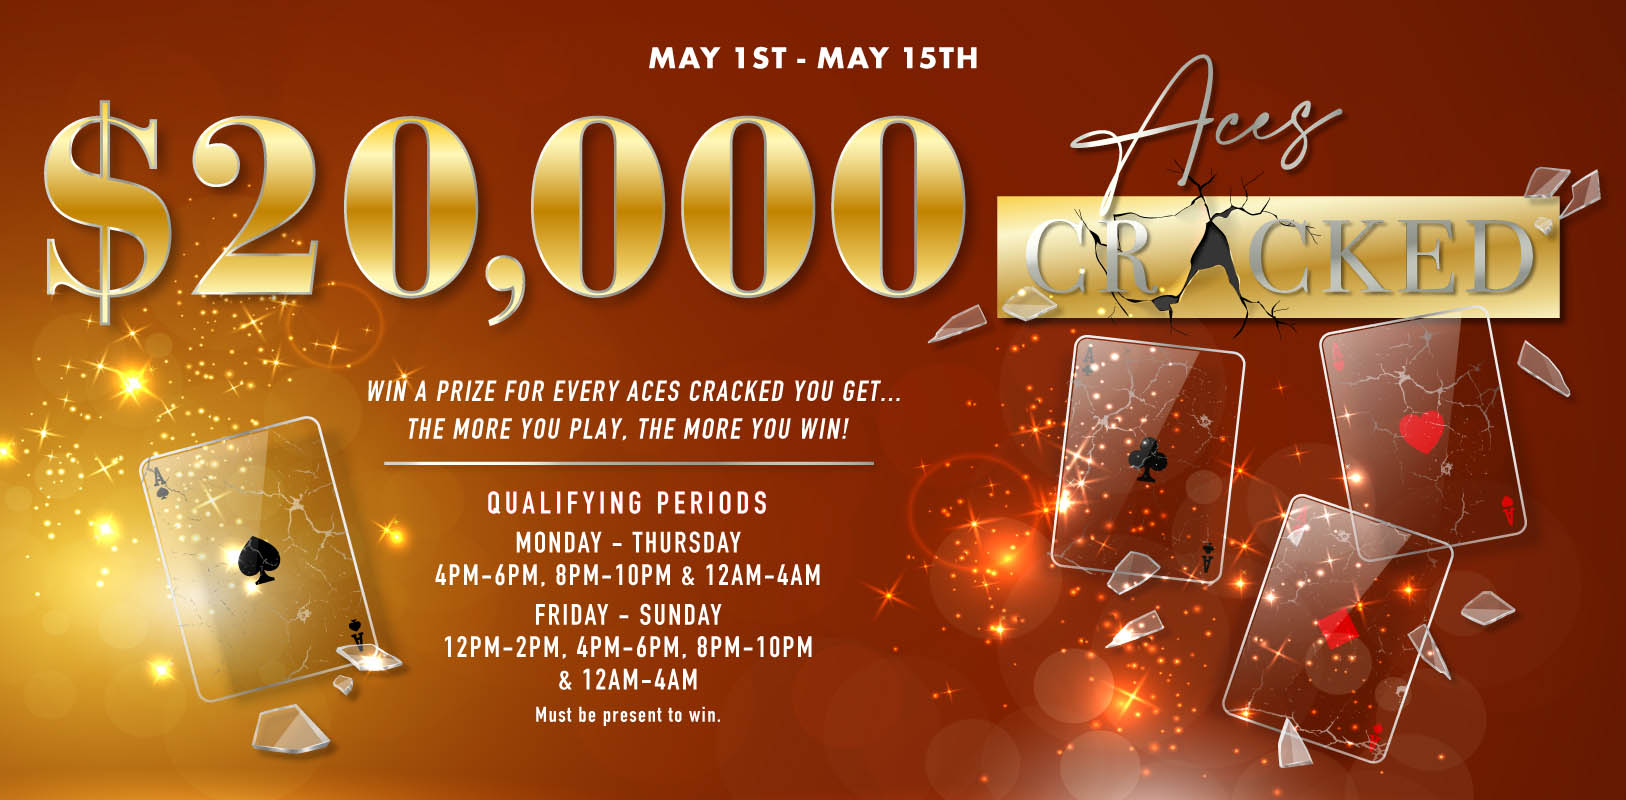 $20,000 Aces Cracked May 1st-May 15th Qualifying Periods Monday-Thursday 4pm-6pm, 8pm-10pm & 12am-4am. Friday-Sunday 12pm-2pm, 4pm-6pm, 8pm-10pm & 12am-4am. Must be present to win. Win a prize for every Aces Cracked you get…the more you play. The more you win!